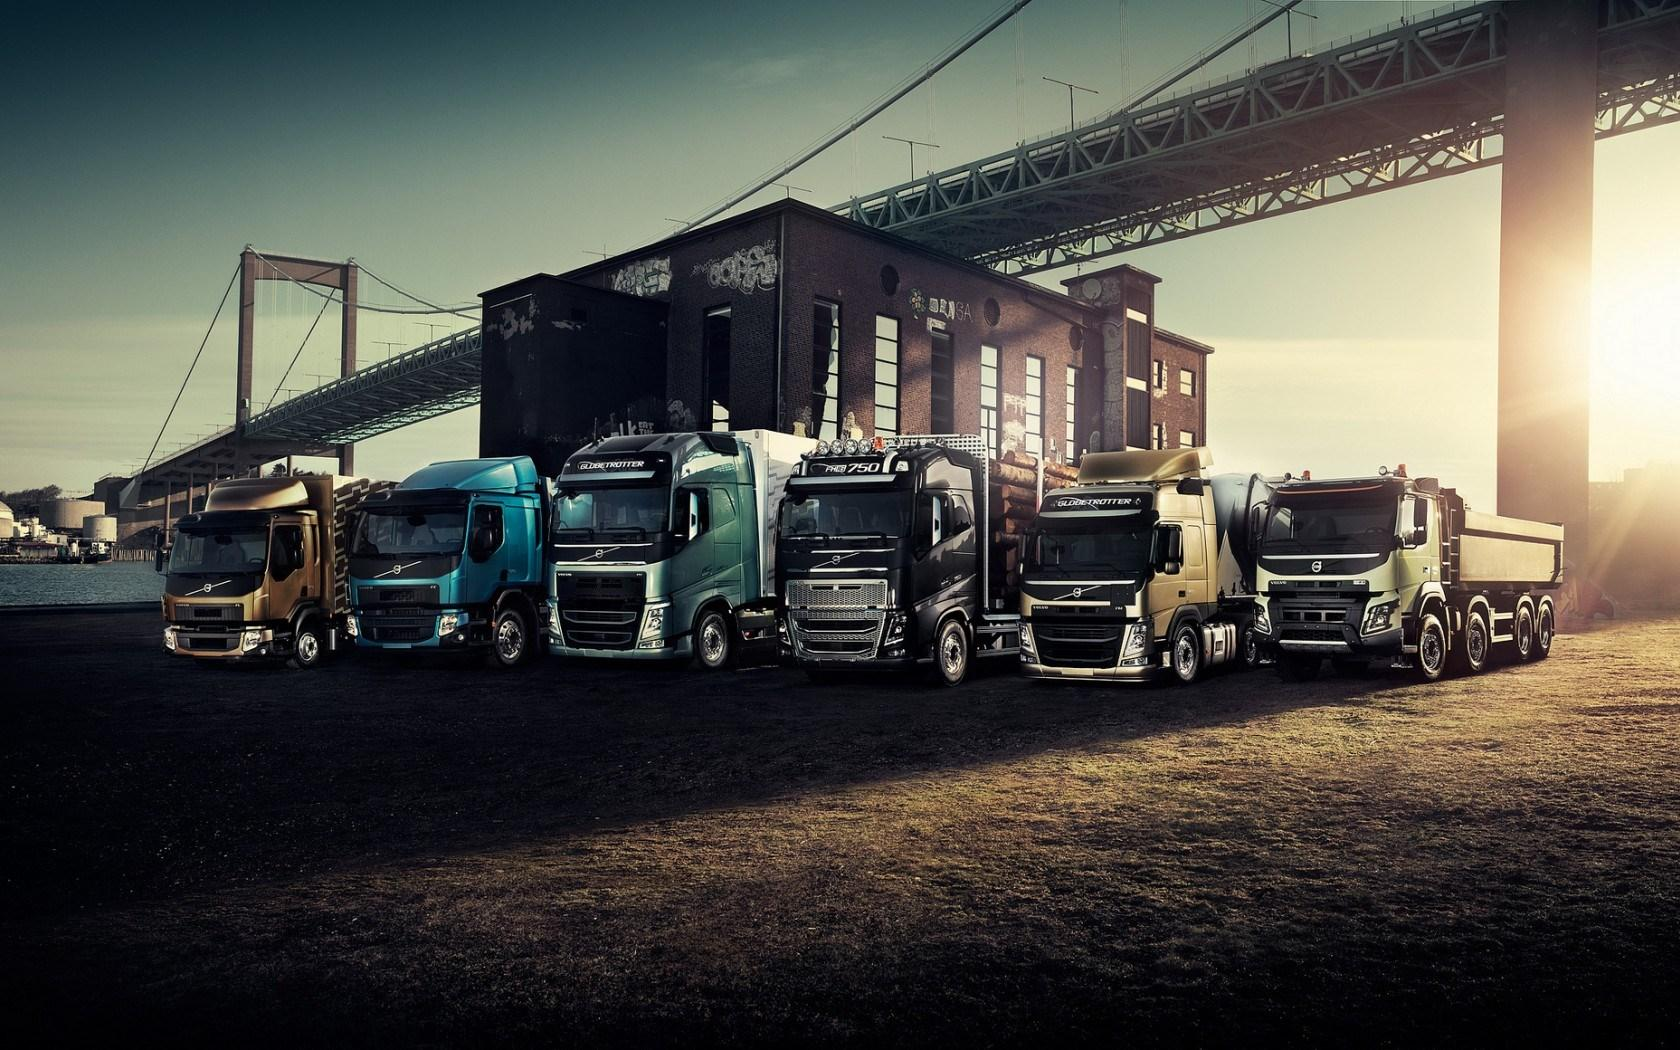 volvo-wallpapers-hd-72019-5572015.png